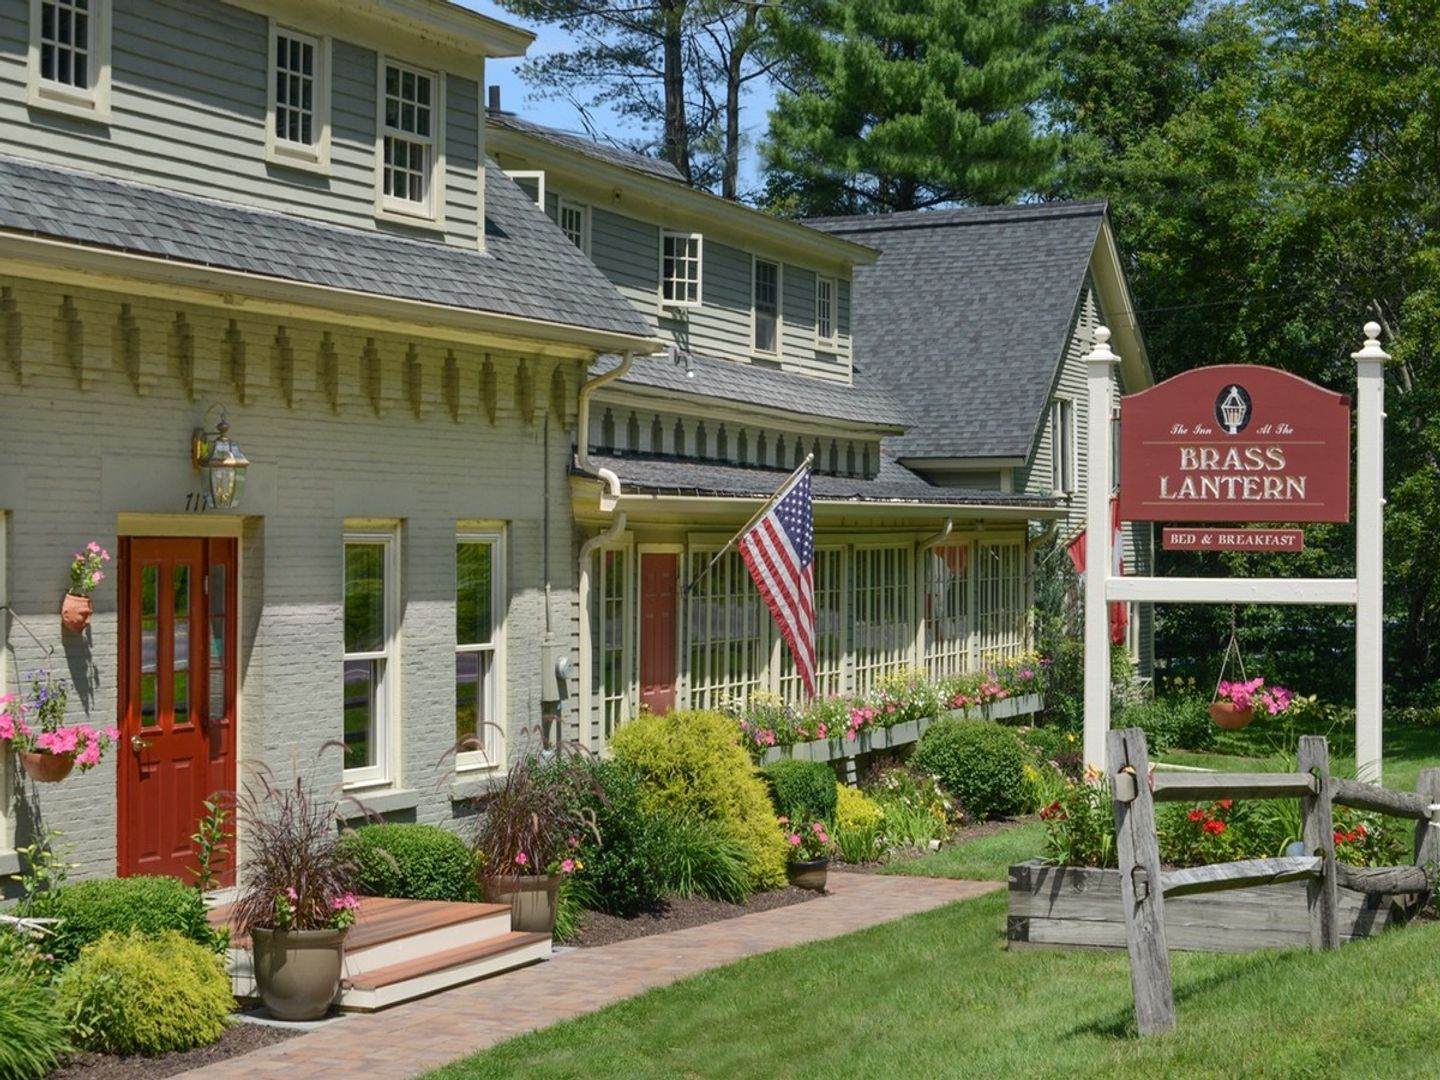 A close up of a flower garden in front of a house at Brass Lantern Inn - Stowe Vermont.